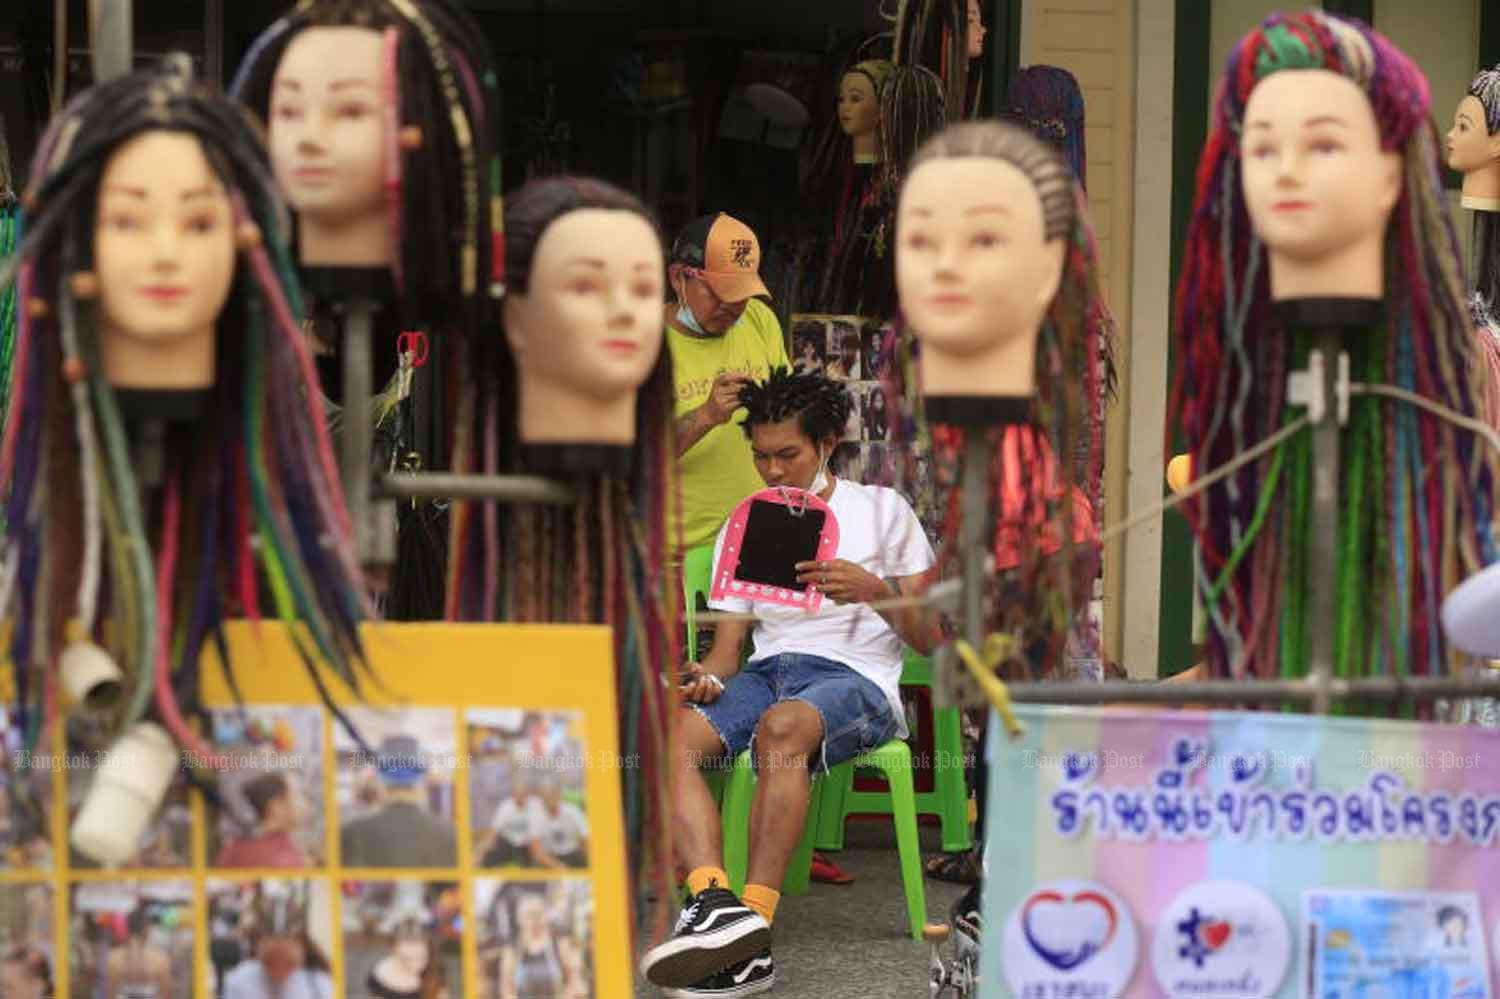 A youth gets his dreadlocks attended to at a hairdresser's on Khao San Road, Bangkok, on Wednesday, when the country recorded one new Covid-19 death and 54 new infections. (Photo: Pornprom Satrabhaya)